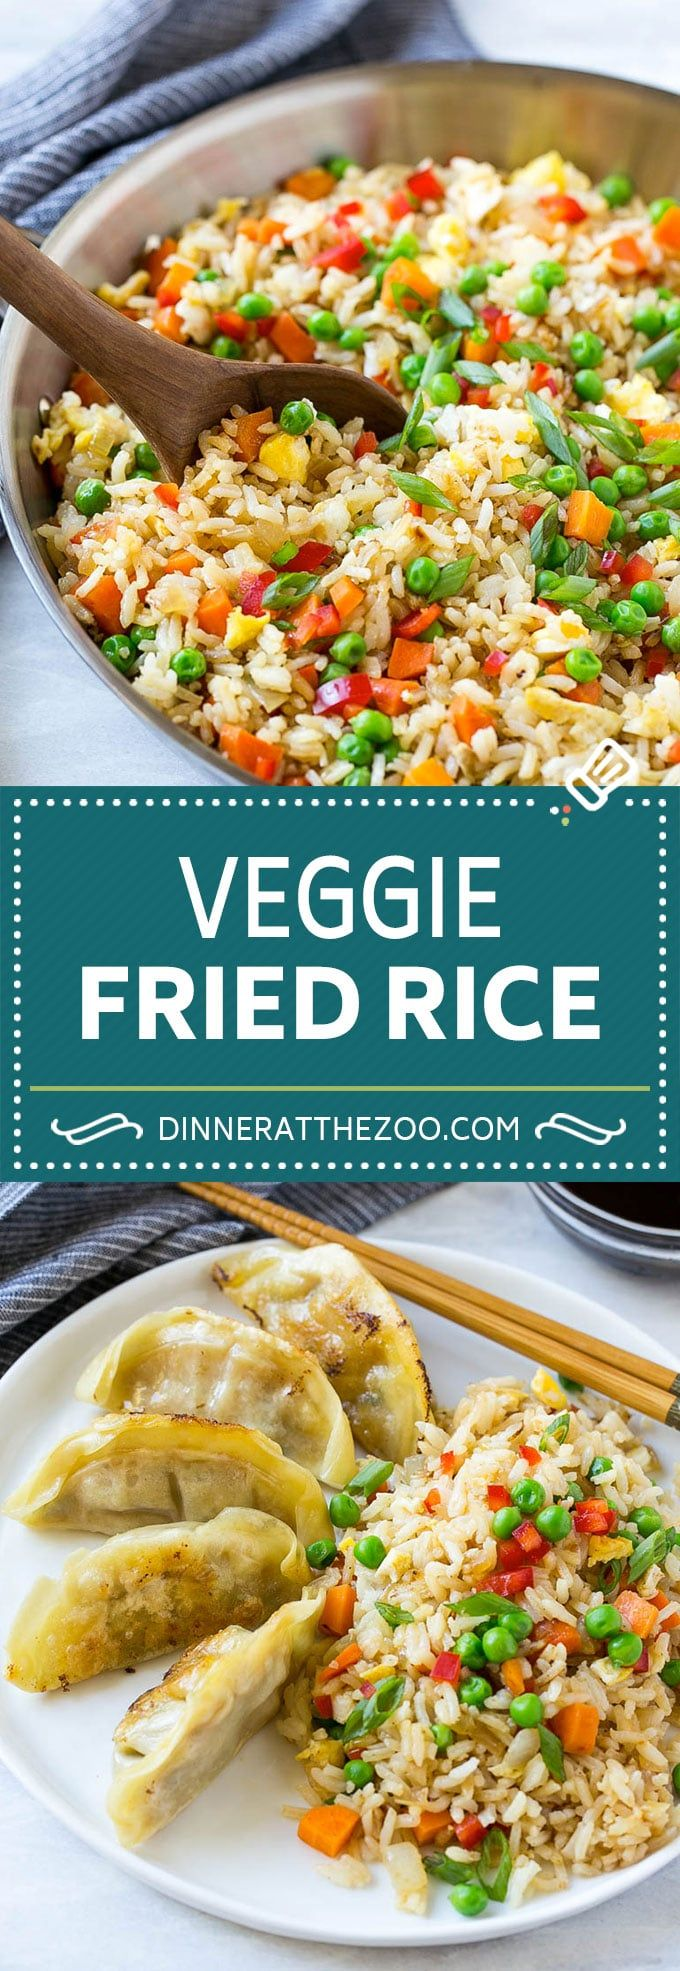 Veggie Fried Rice - Dinner at the Zoo